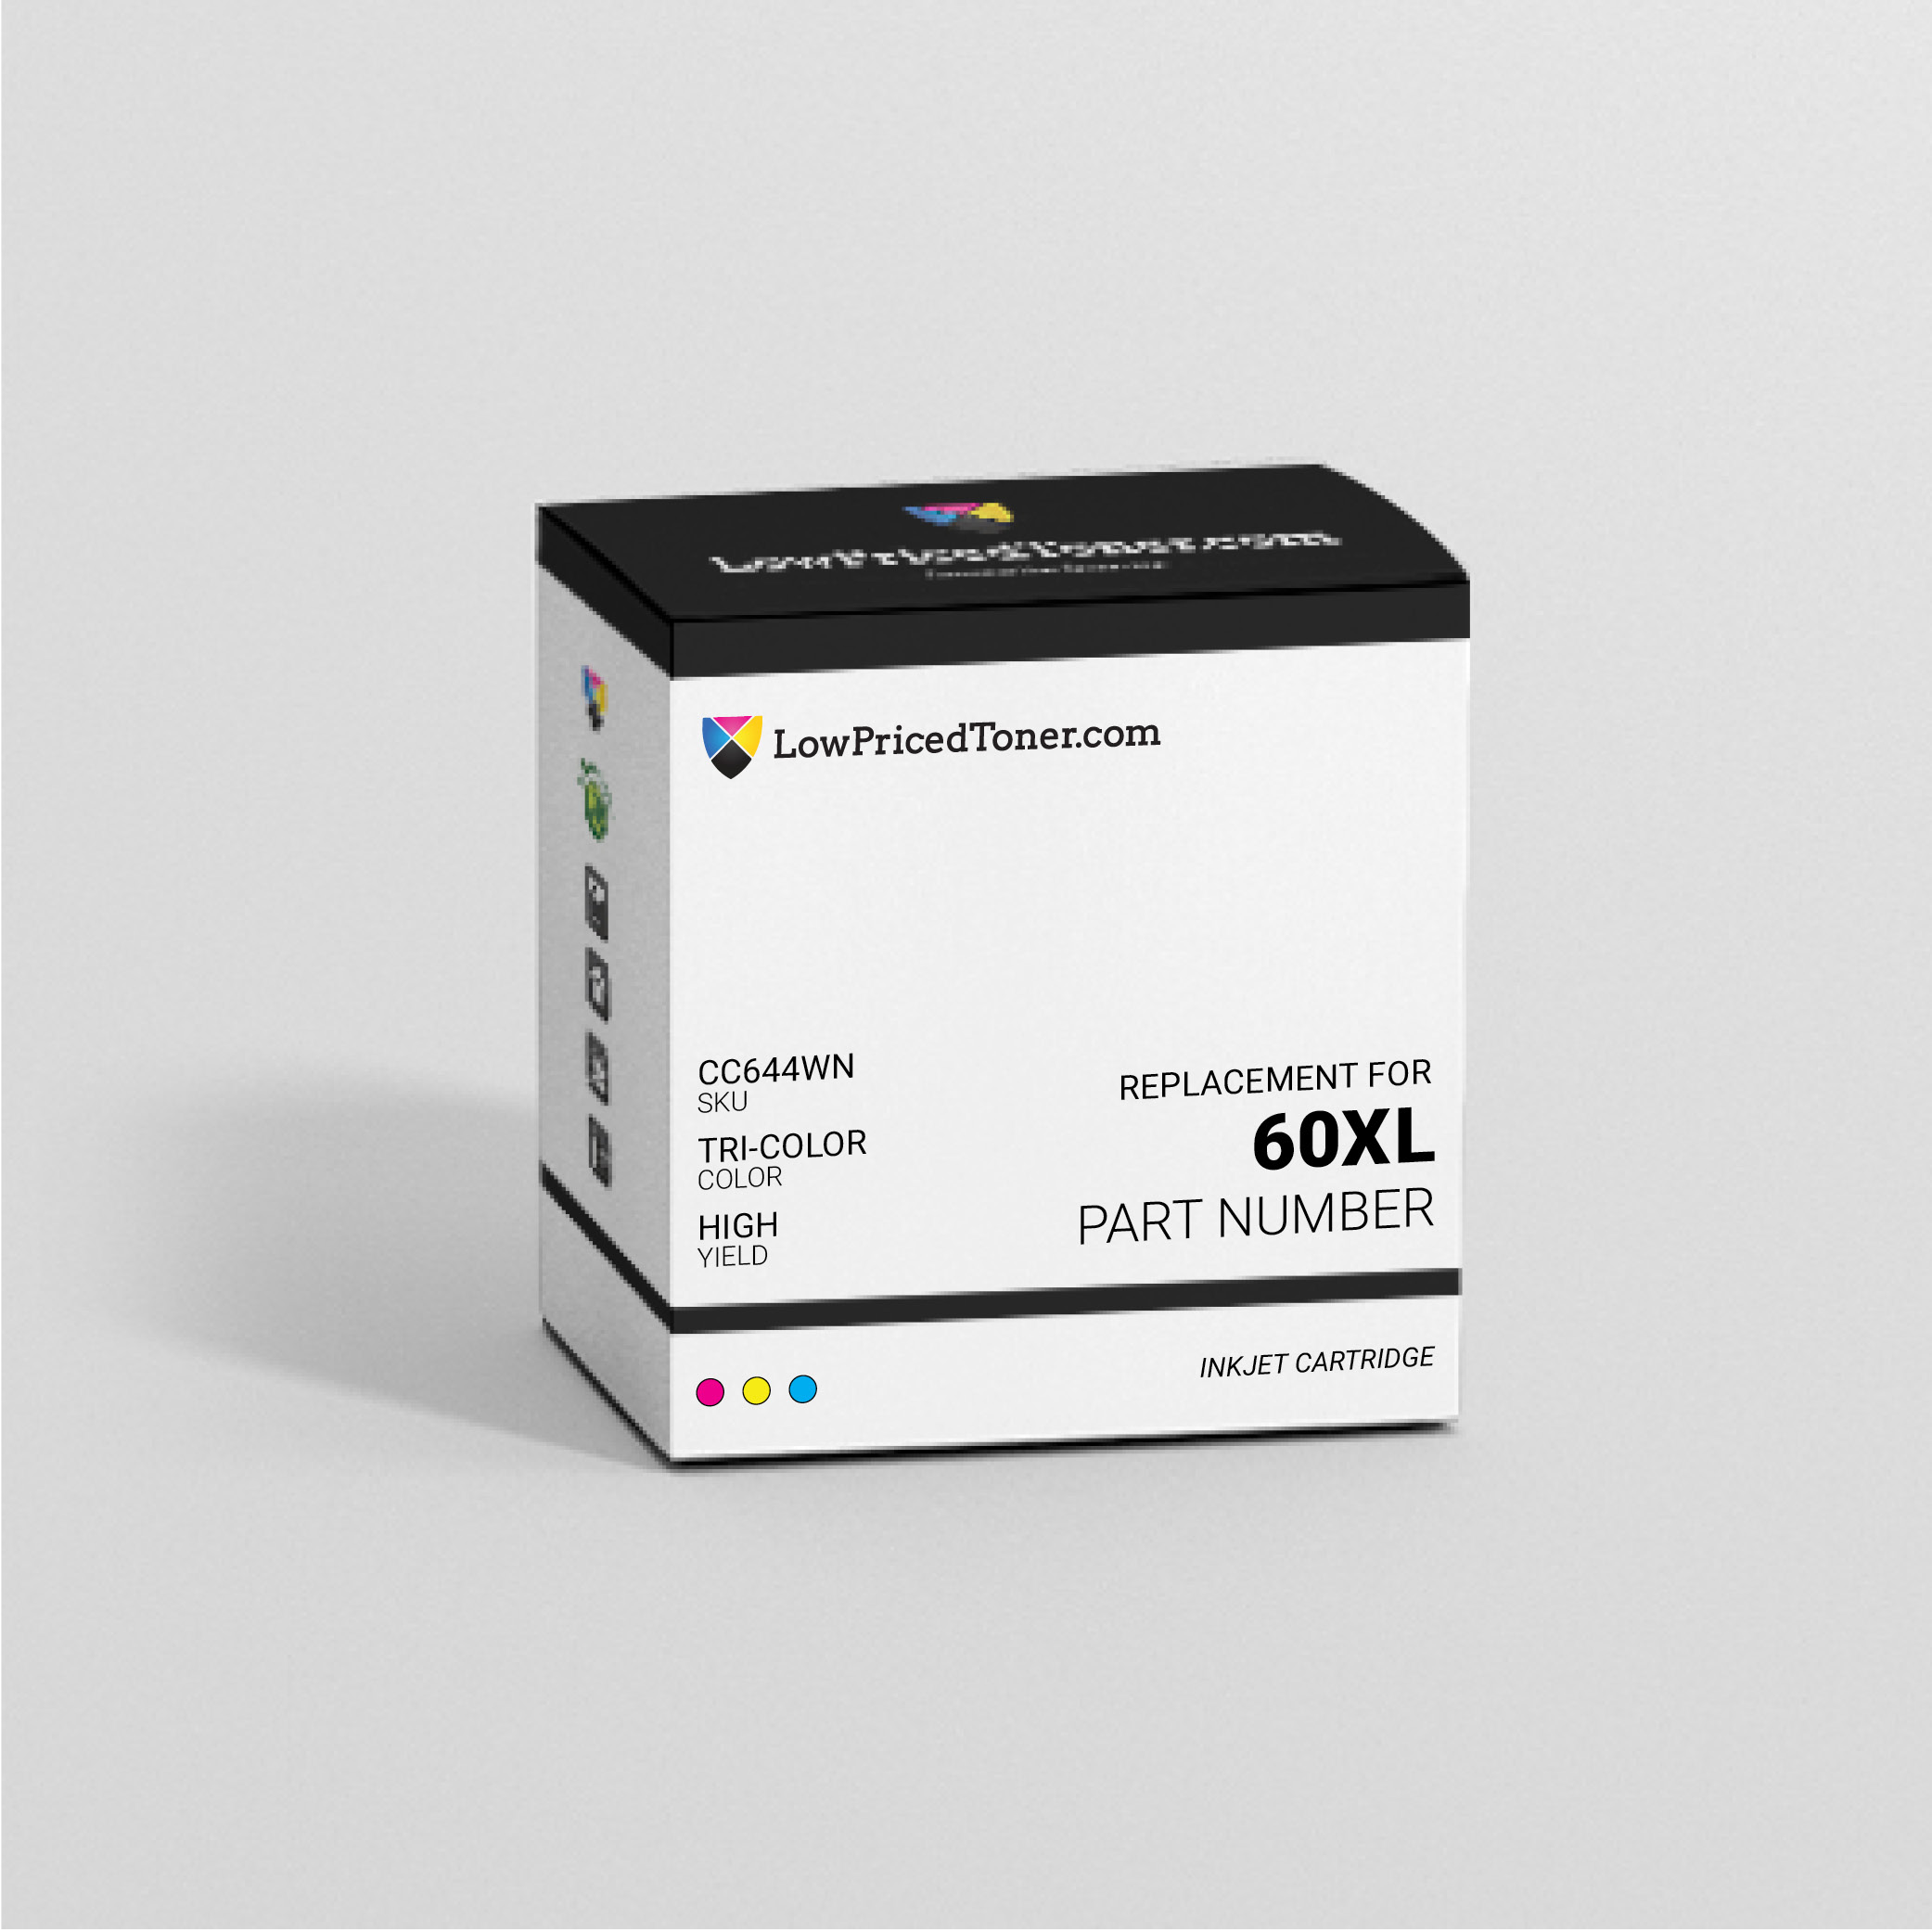 HP CC644WN 60XL Remanufactured TriColor Ink Cartridge High Yield